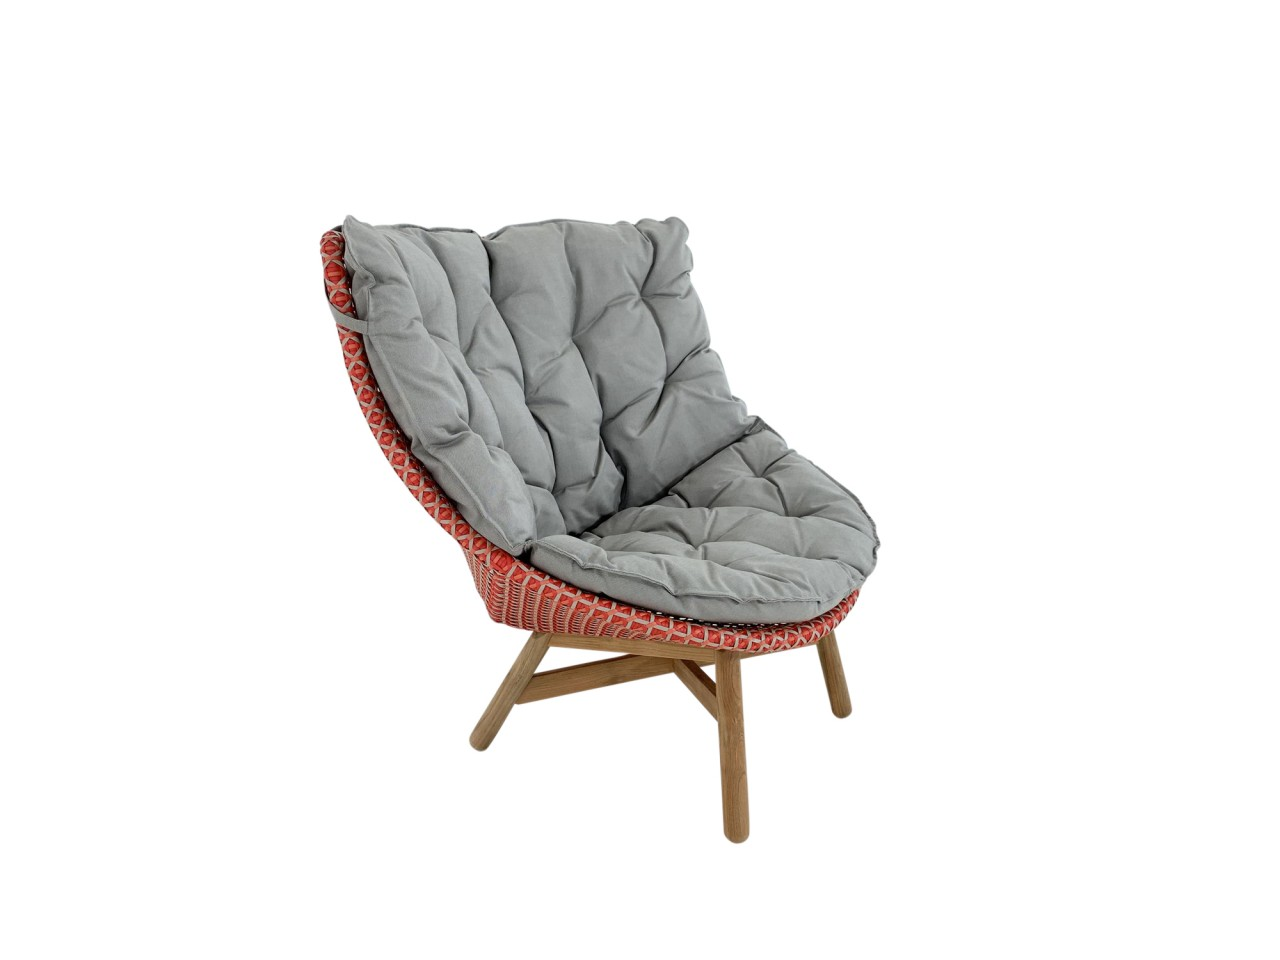 DEDON MBRACE WING CHAIR Hochlehner Sessel in spice mit Polsterauflage in cool taupe